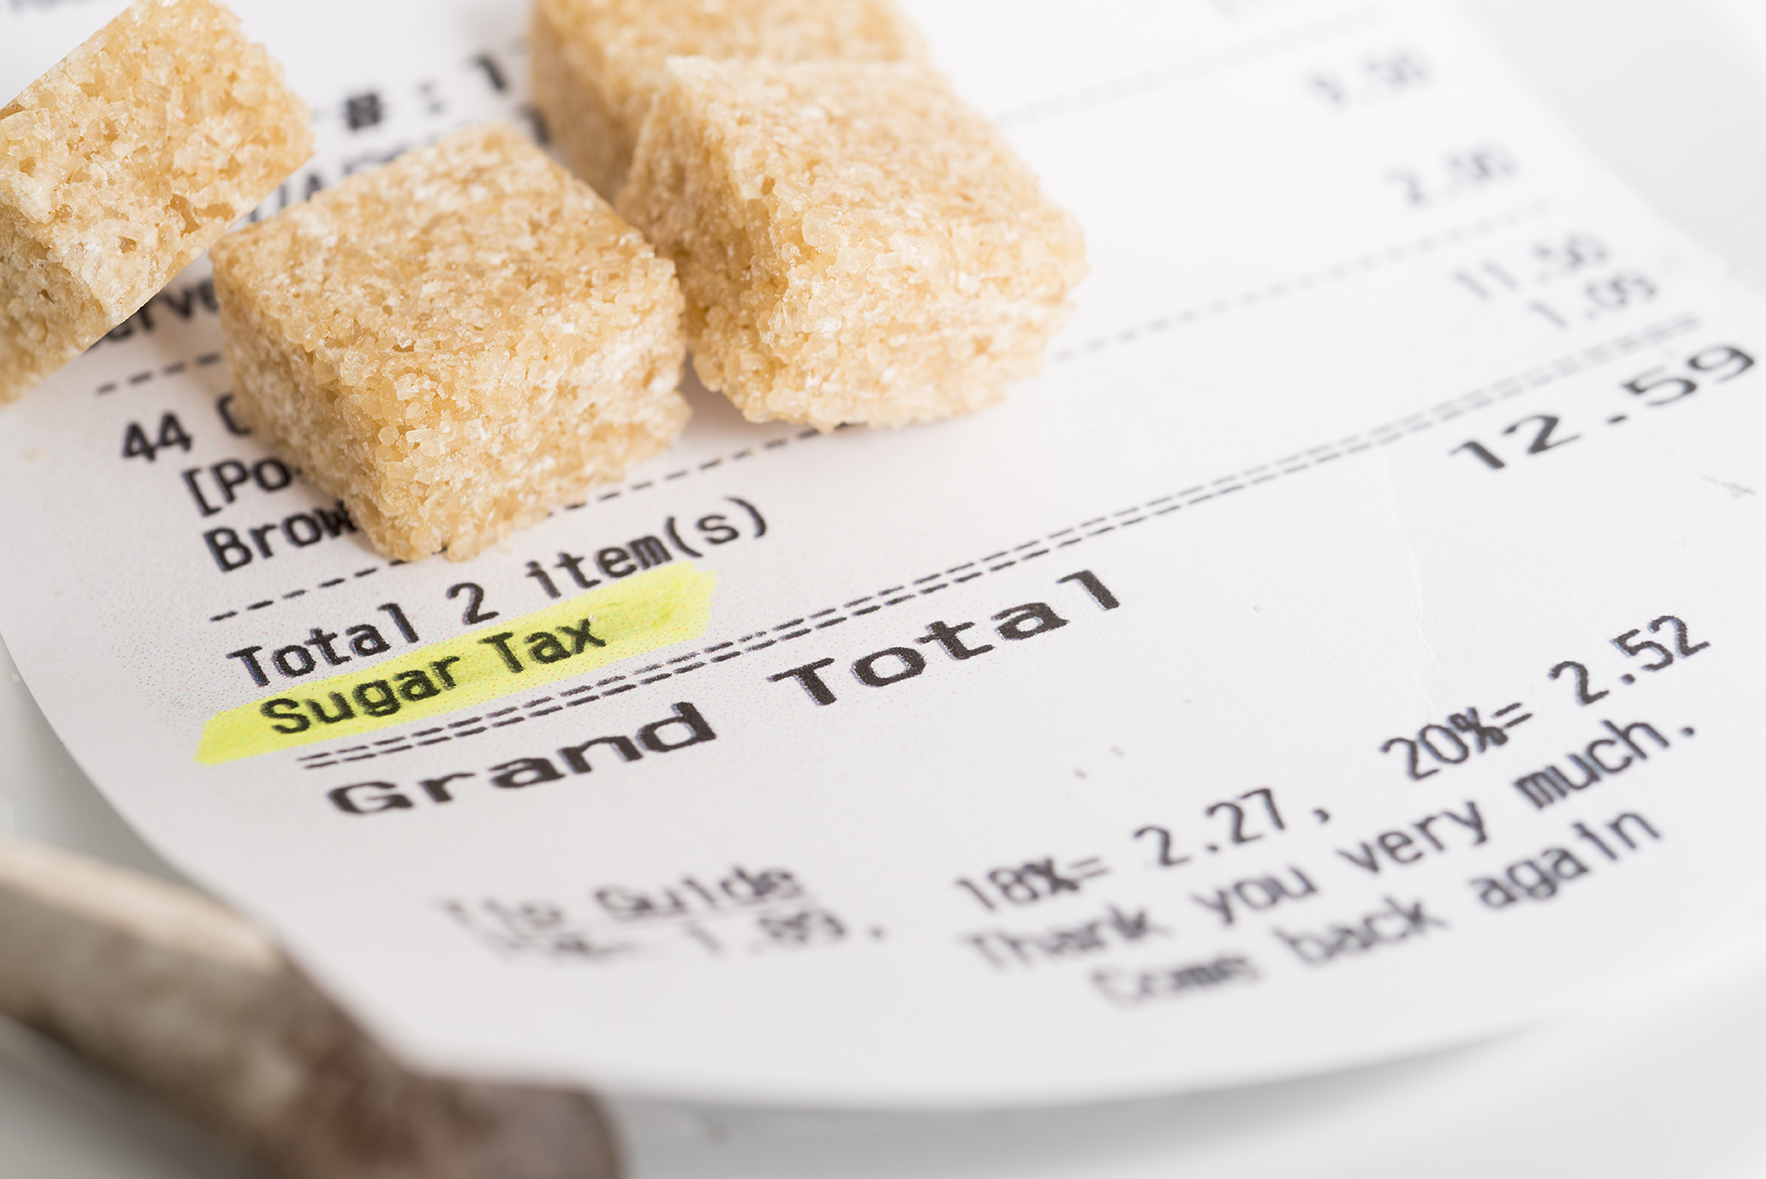 Sugar reduction plan goes beyond taxation